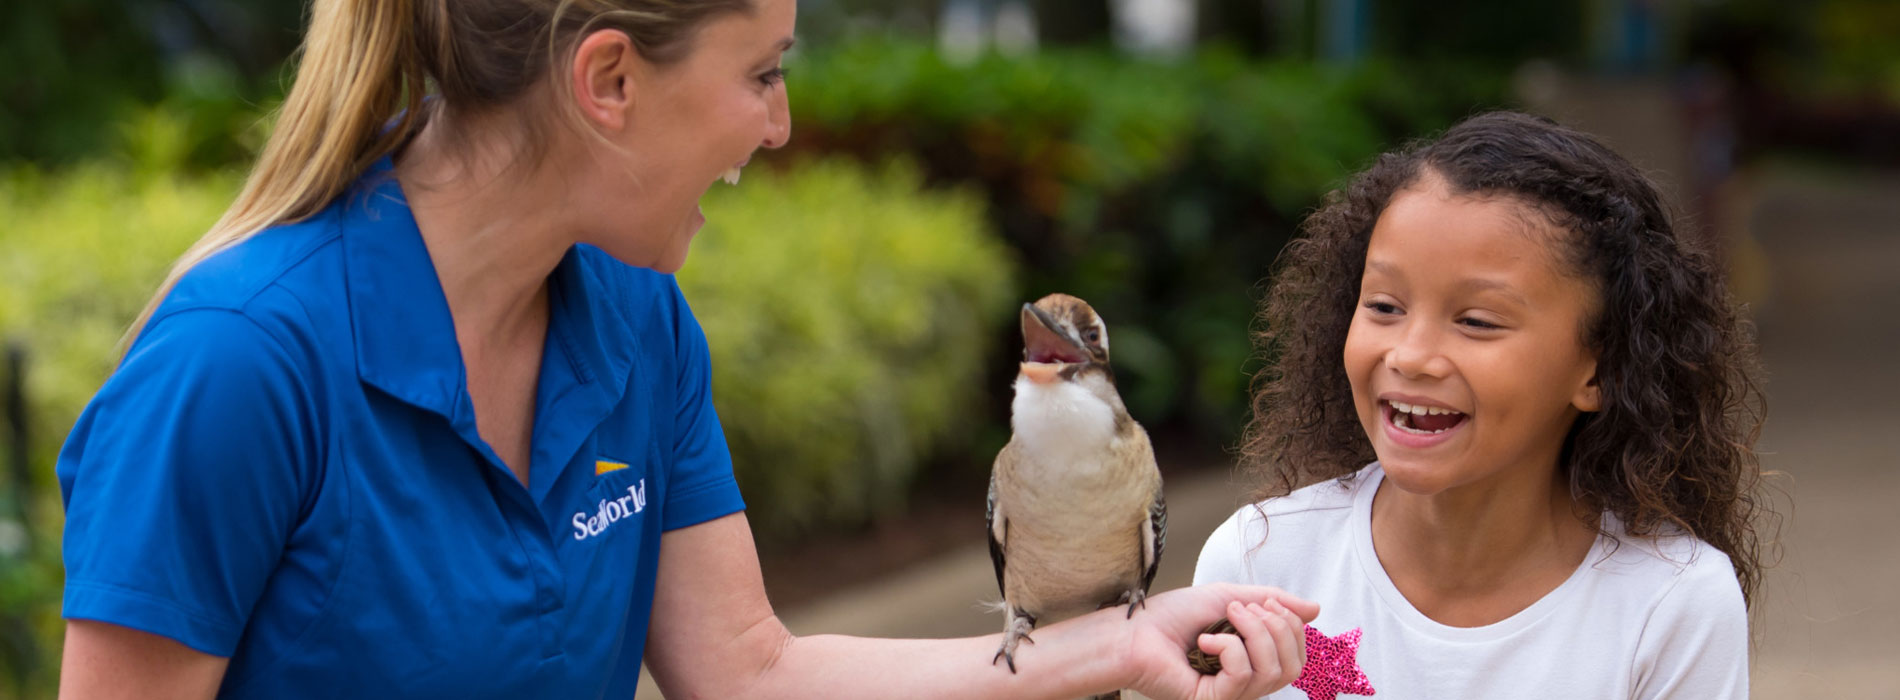 Girl making connection with a bird at SeaWorld.